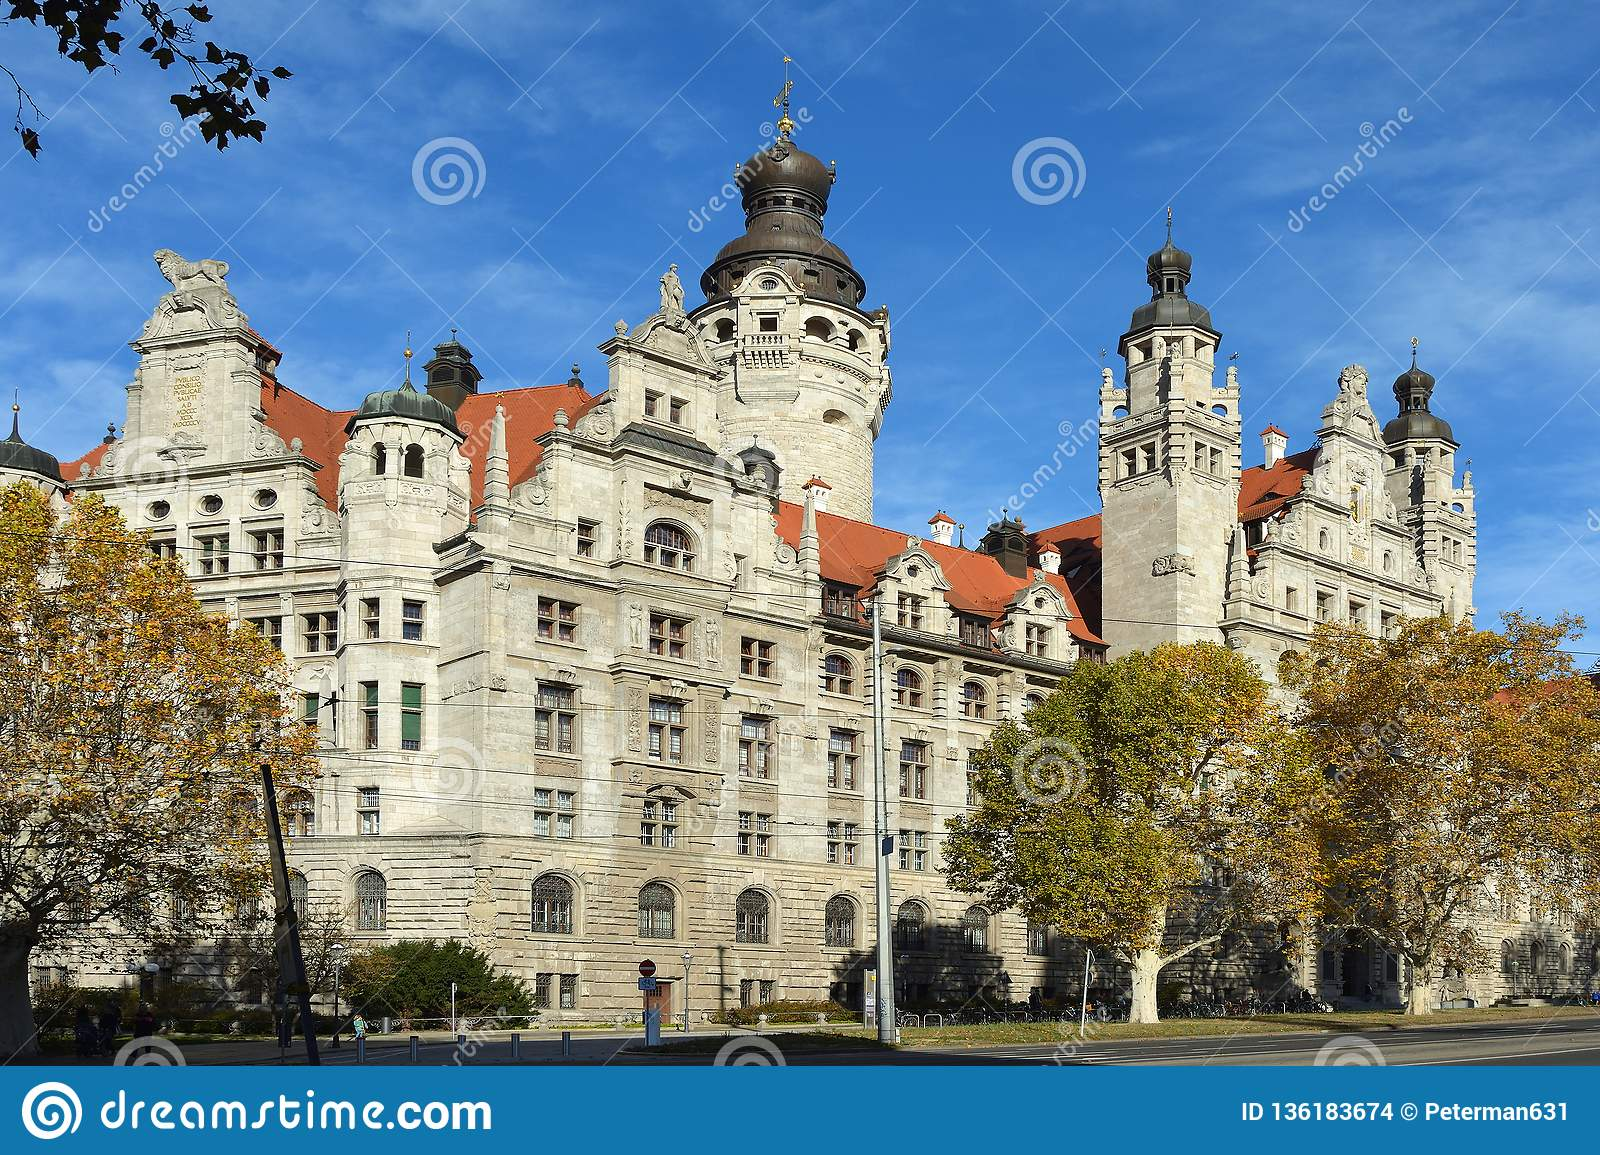 New Town Hall Of Leipzig Germany Editorial Stock Image Image Of Cityhall Tourism 136183674